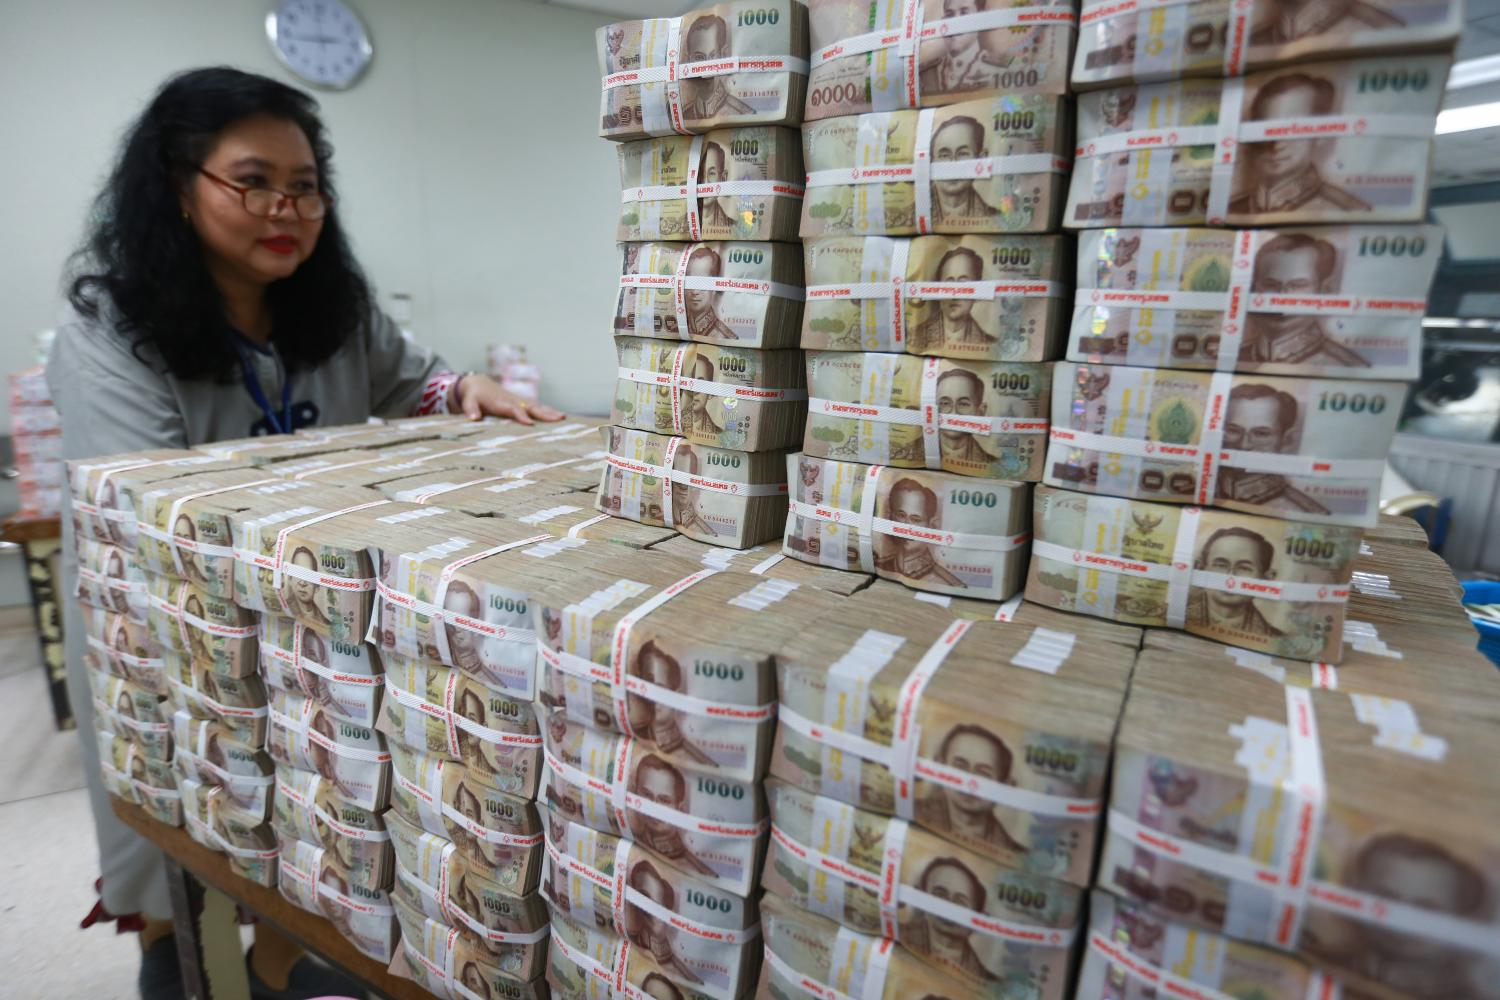 A Bangkok Bank employee gathers stacks of thousand-baht banknotes. A senior BoT official said banks have a sufficient capital buffer in the event of higher past-due payments and debt restructuring. (Photo by Somchai Poomlard)